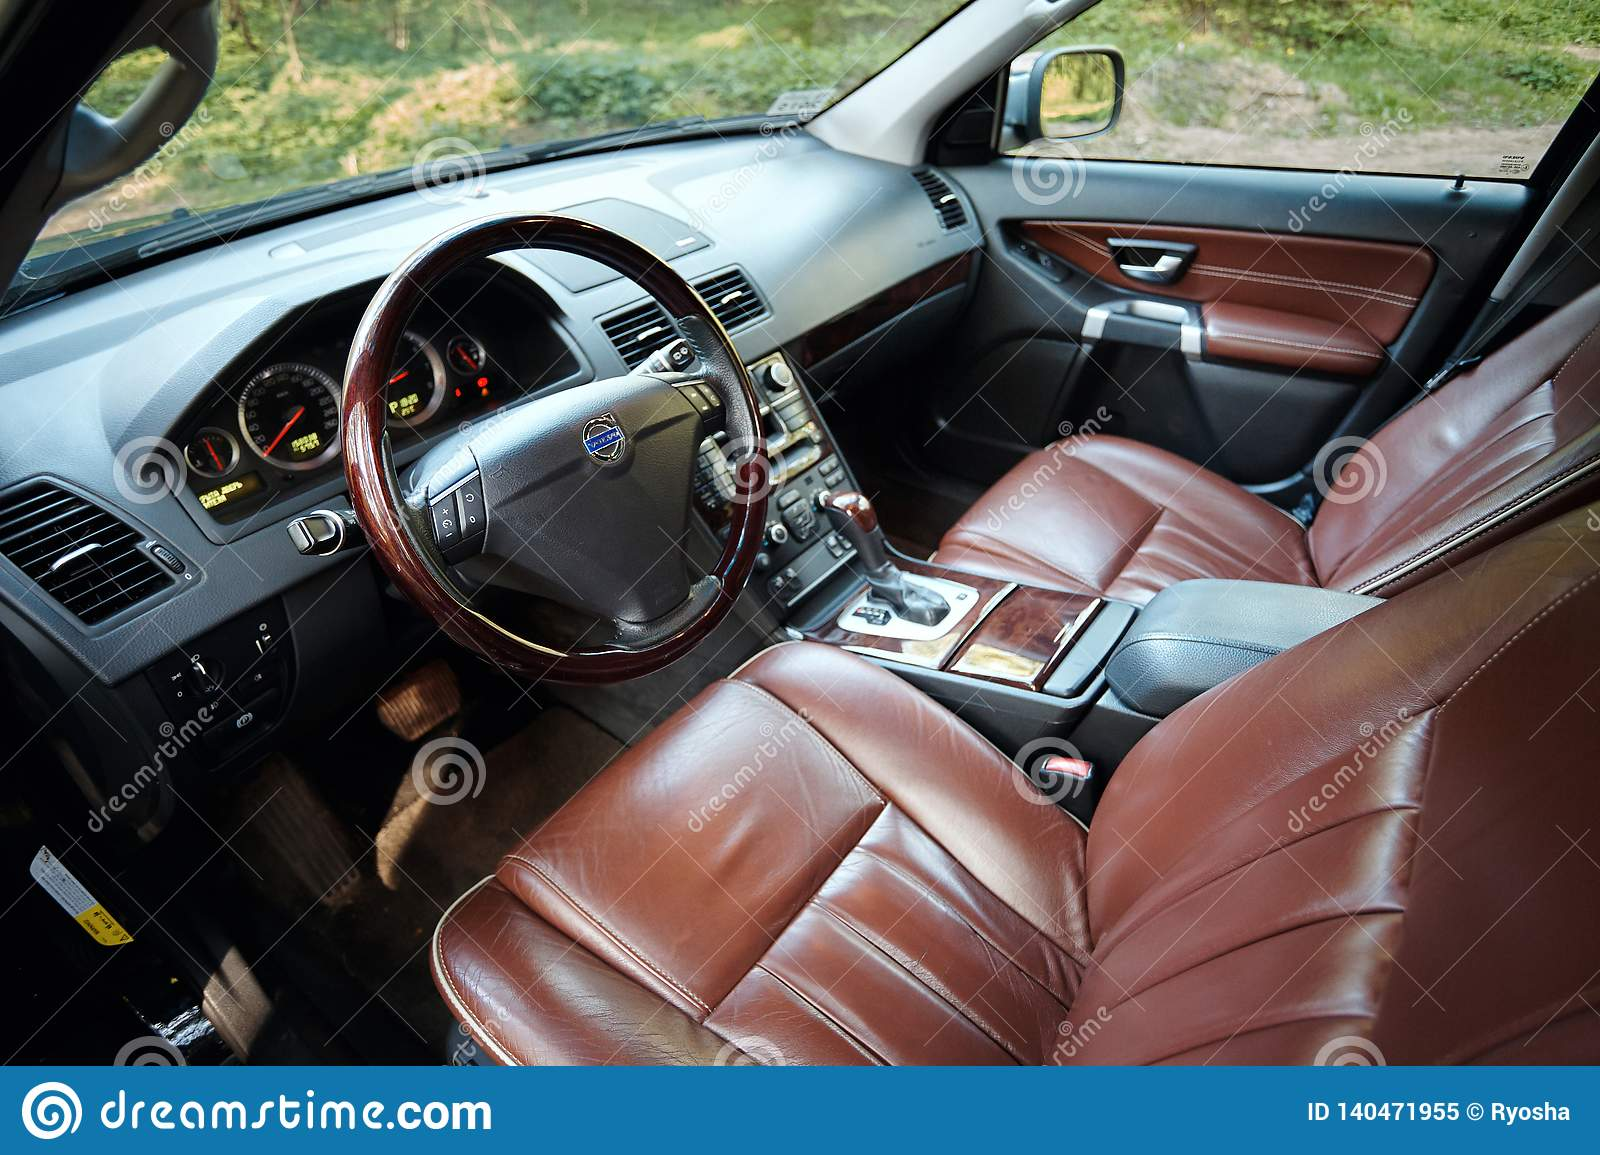 Volvo Xc90 4 4 V8 1st Generation Restyling 4wd Suv Premium Car Interior Brown Leather With Forest View From Driver Side Editorial Image Image Of Restyling Handle 140471955